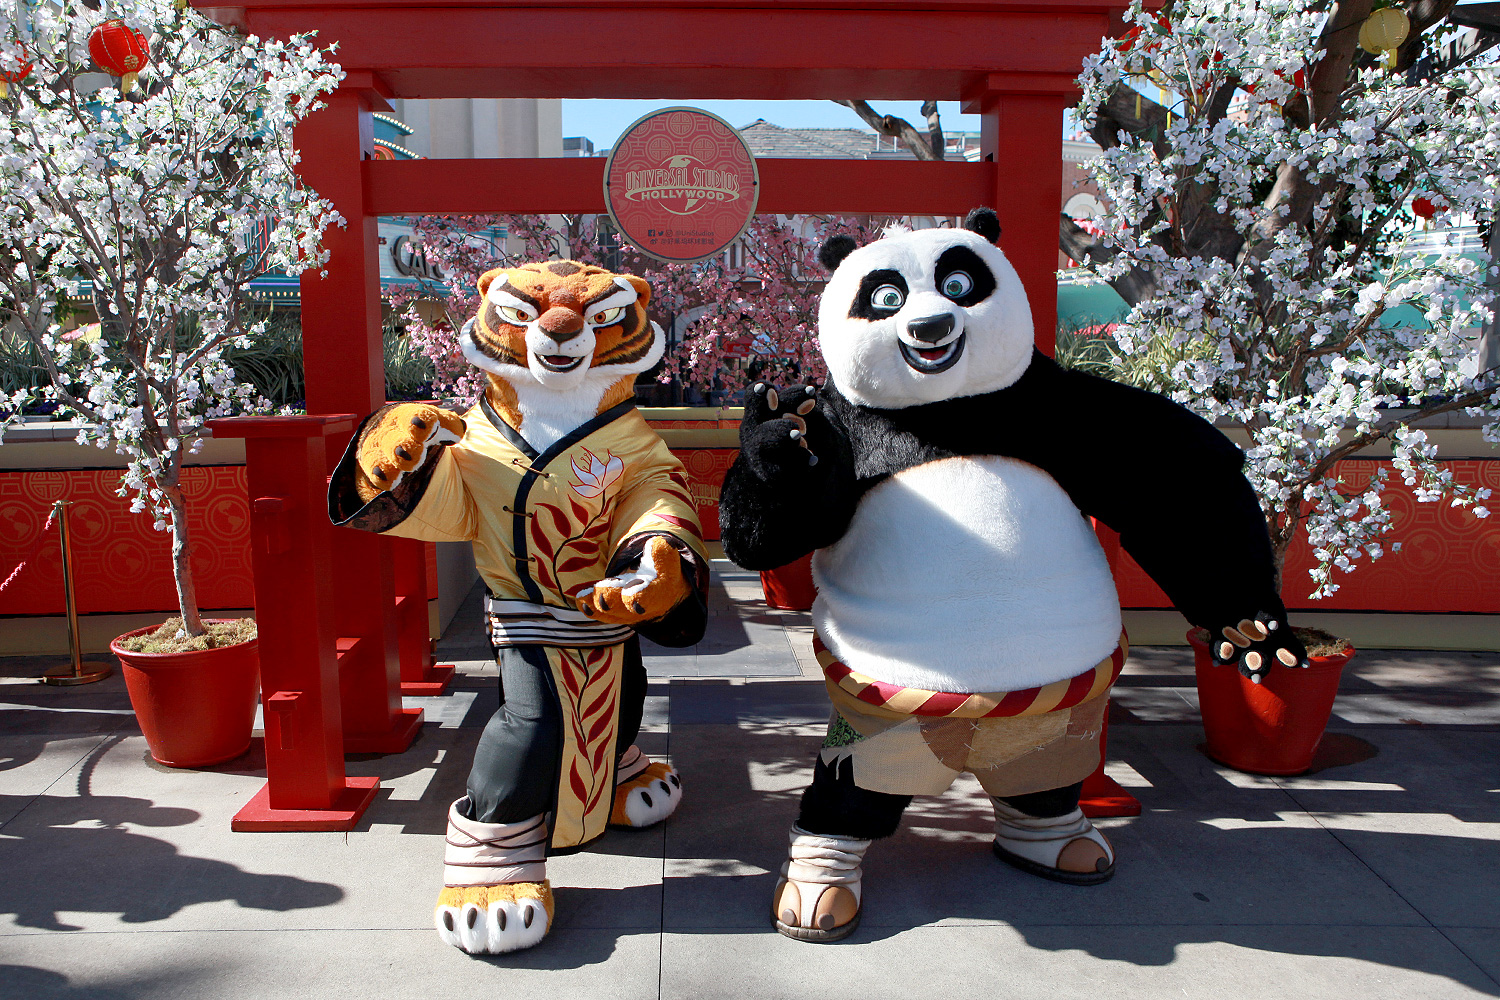 Kung Fu Panda comes to Universal Studios Hollywood